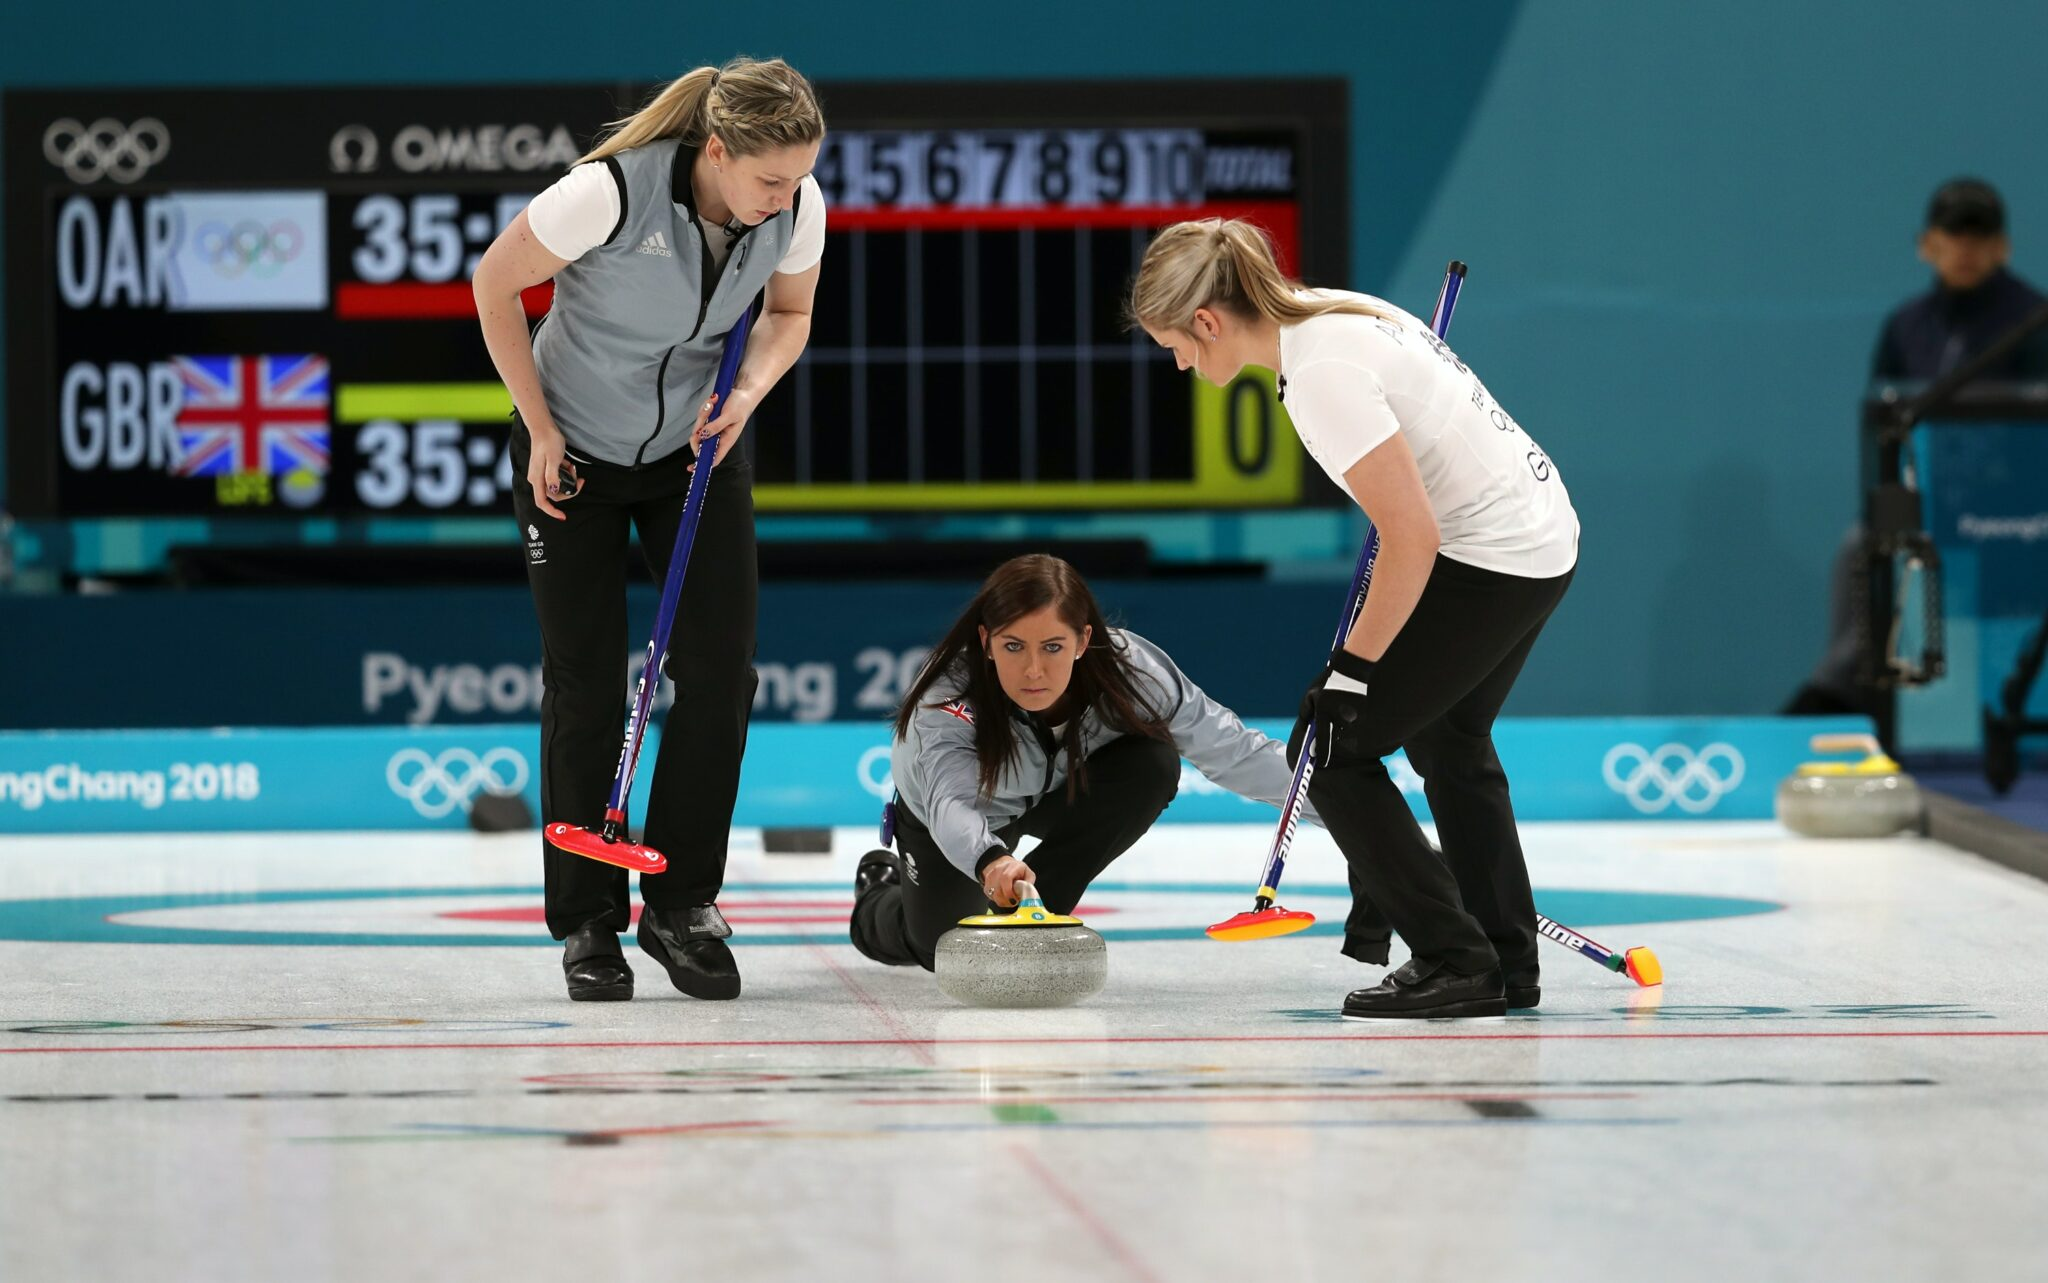 Is Curling an olympic sport?